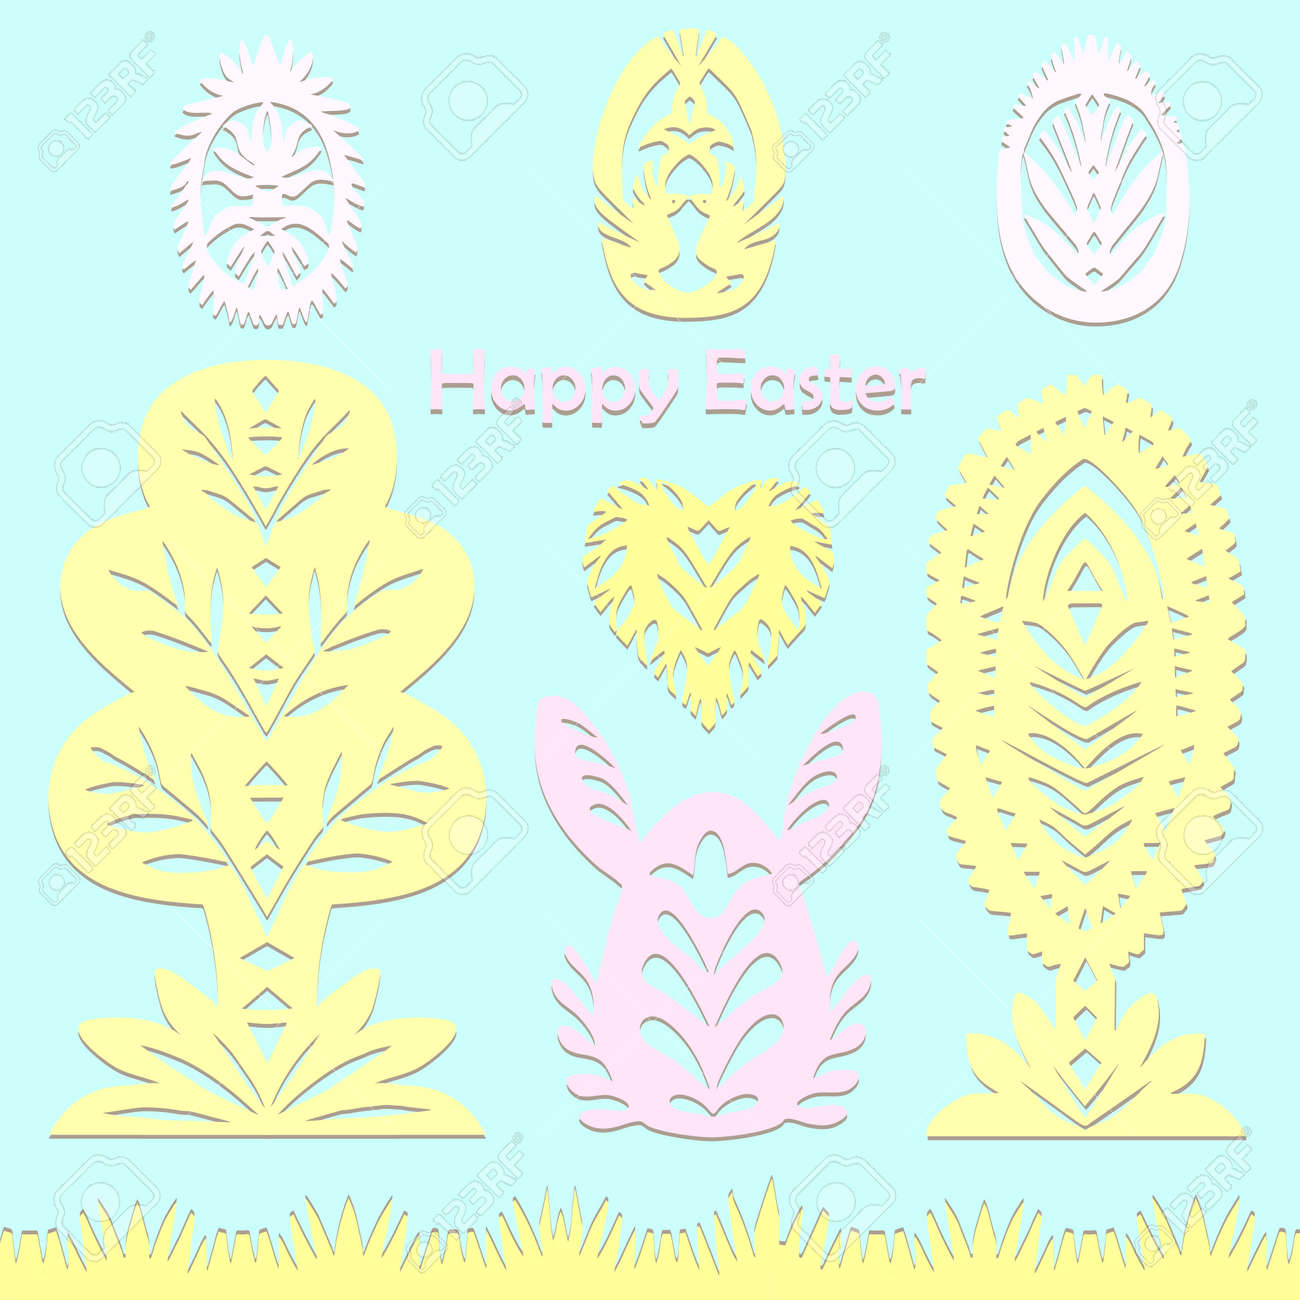 Set of paper cut festive symbols Holiday spring Easter signs egg, rabbit, heart, tree in pink, yellow, gray, blue colors. Traditional Belarusian, Polish paper clippings. Hand made. Vector - 164139323